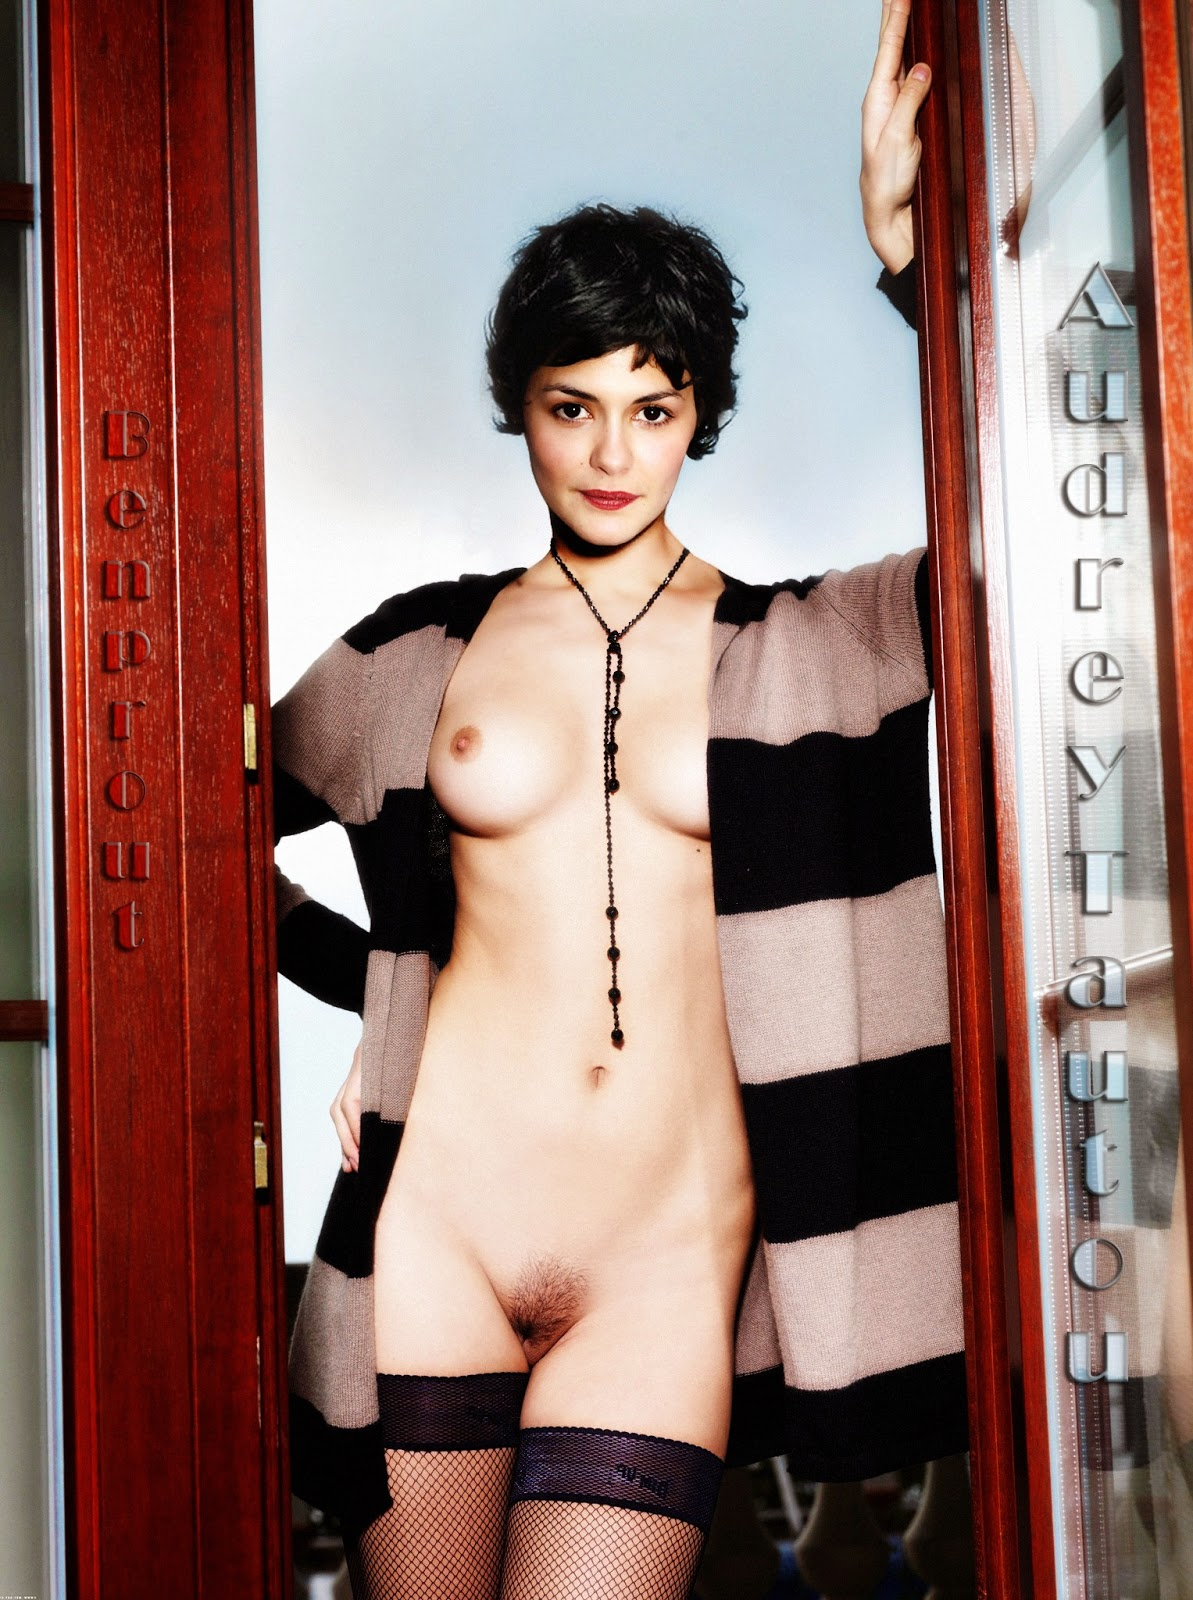 Nude Celebrity Pic Gallery